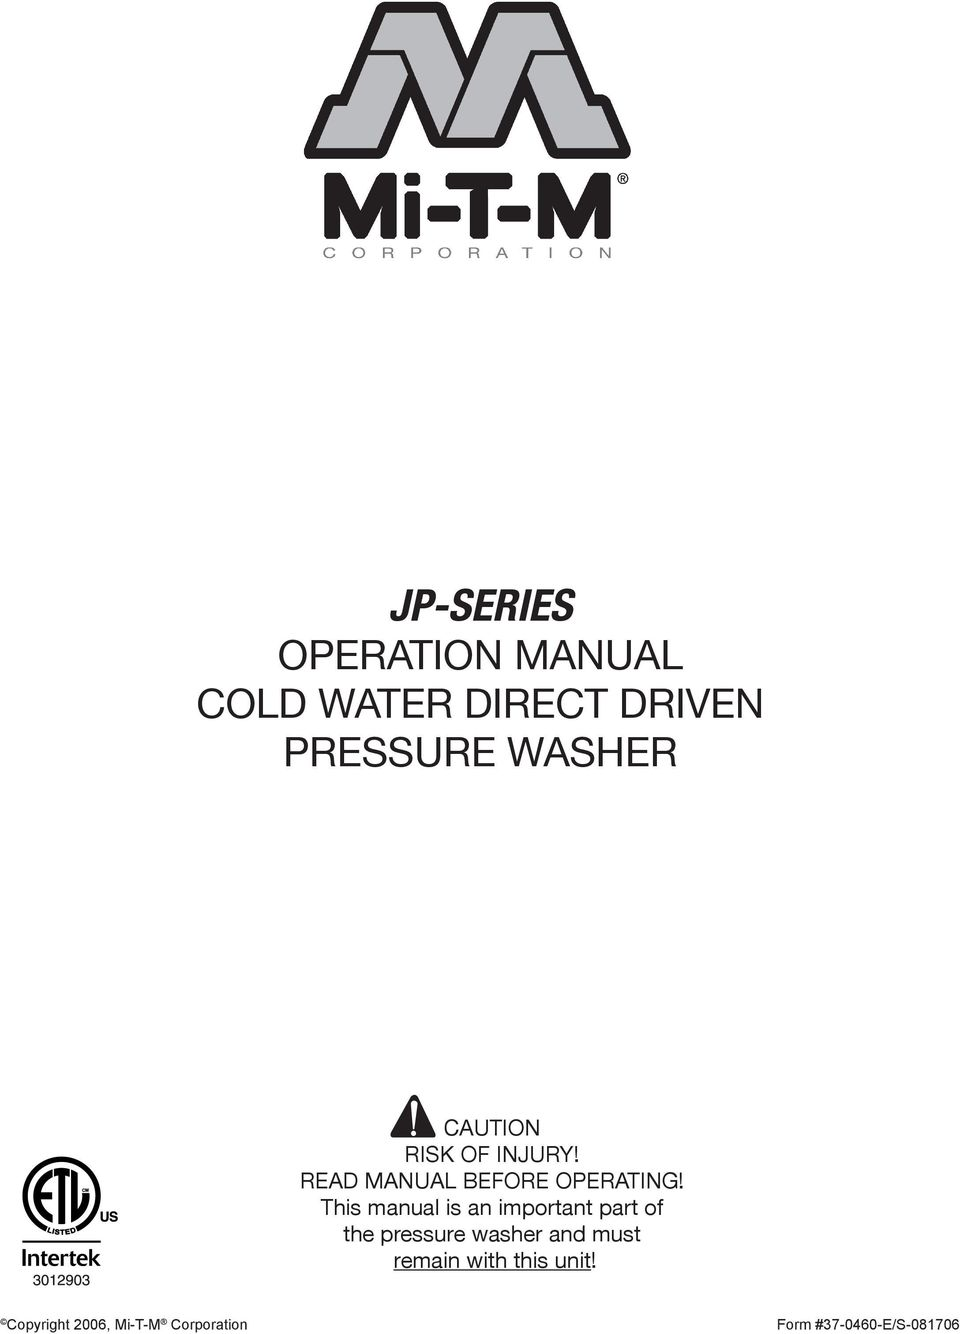 This manual is an important part of the pressure washer and must remain with